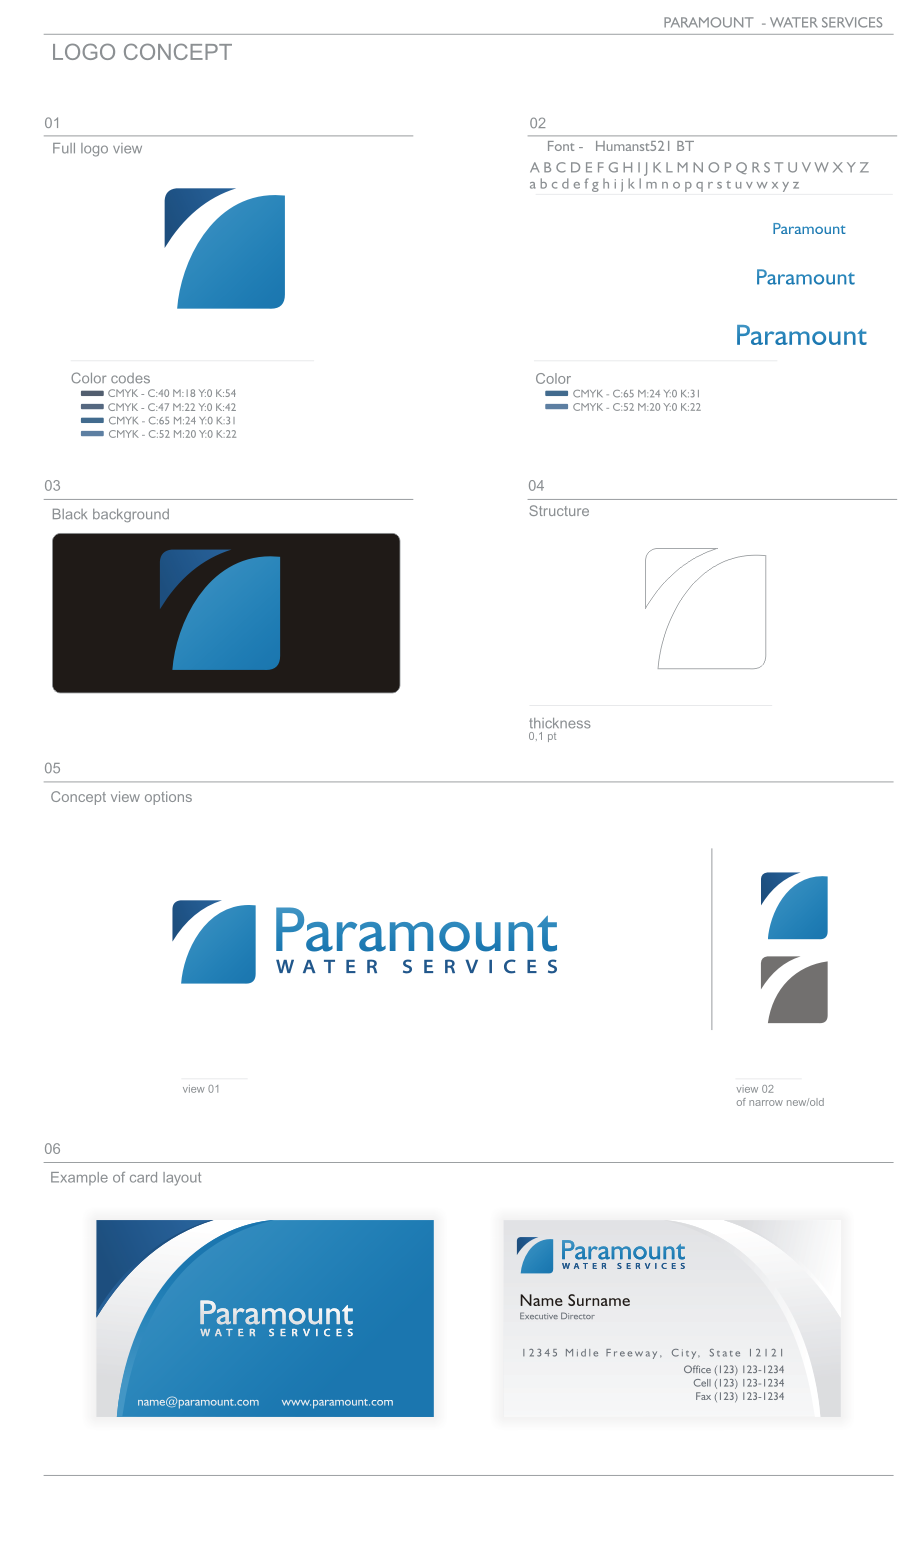 Create the next logo for Paramount Water Services